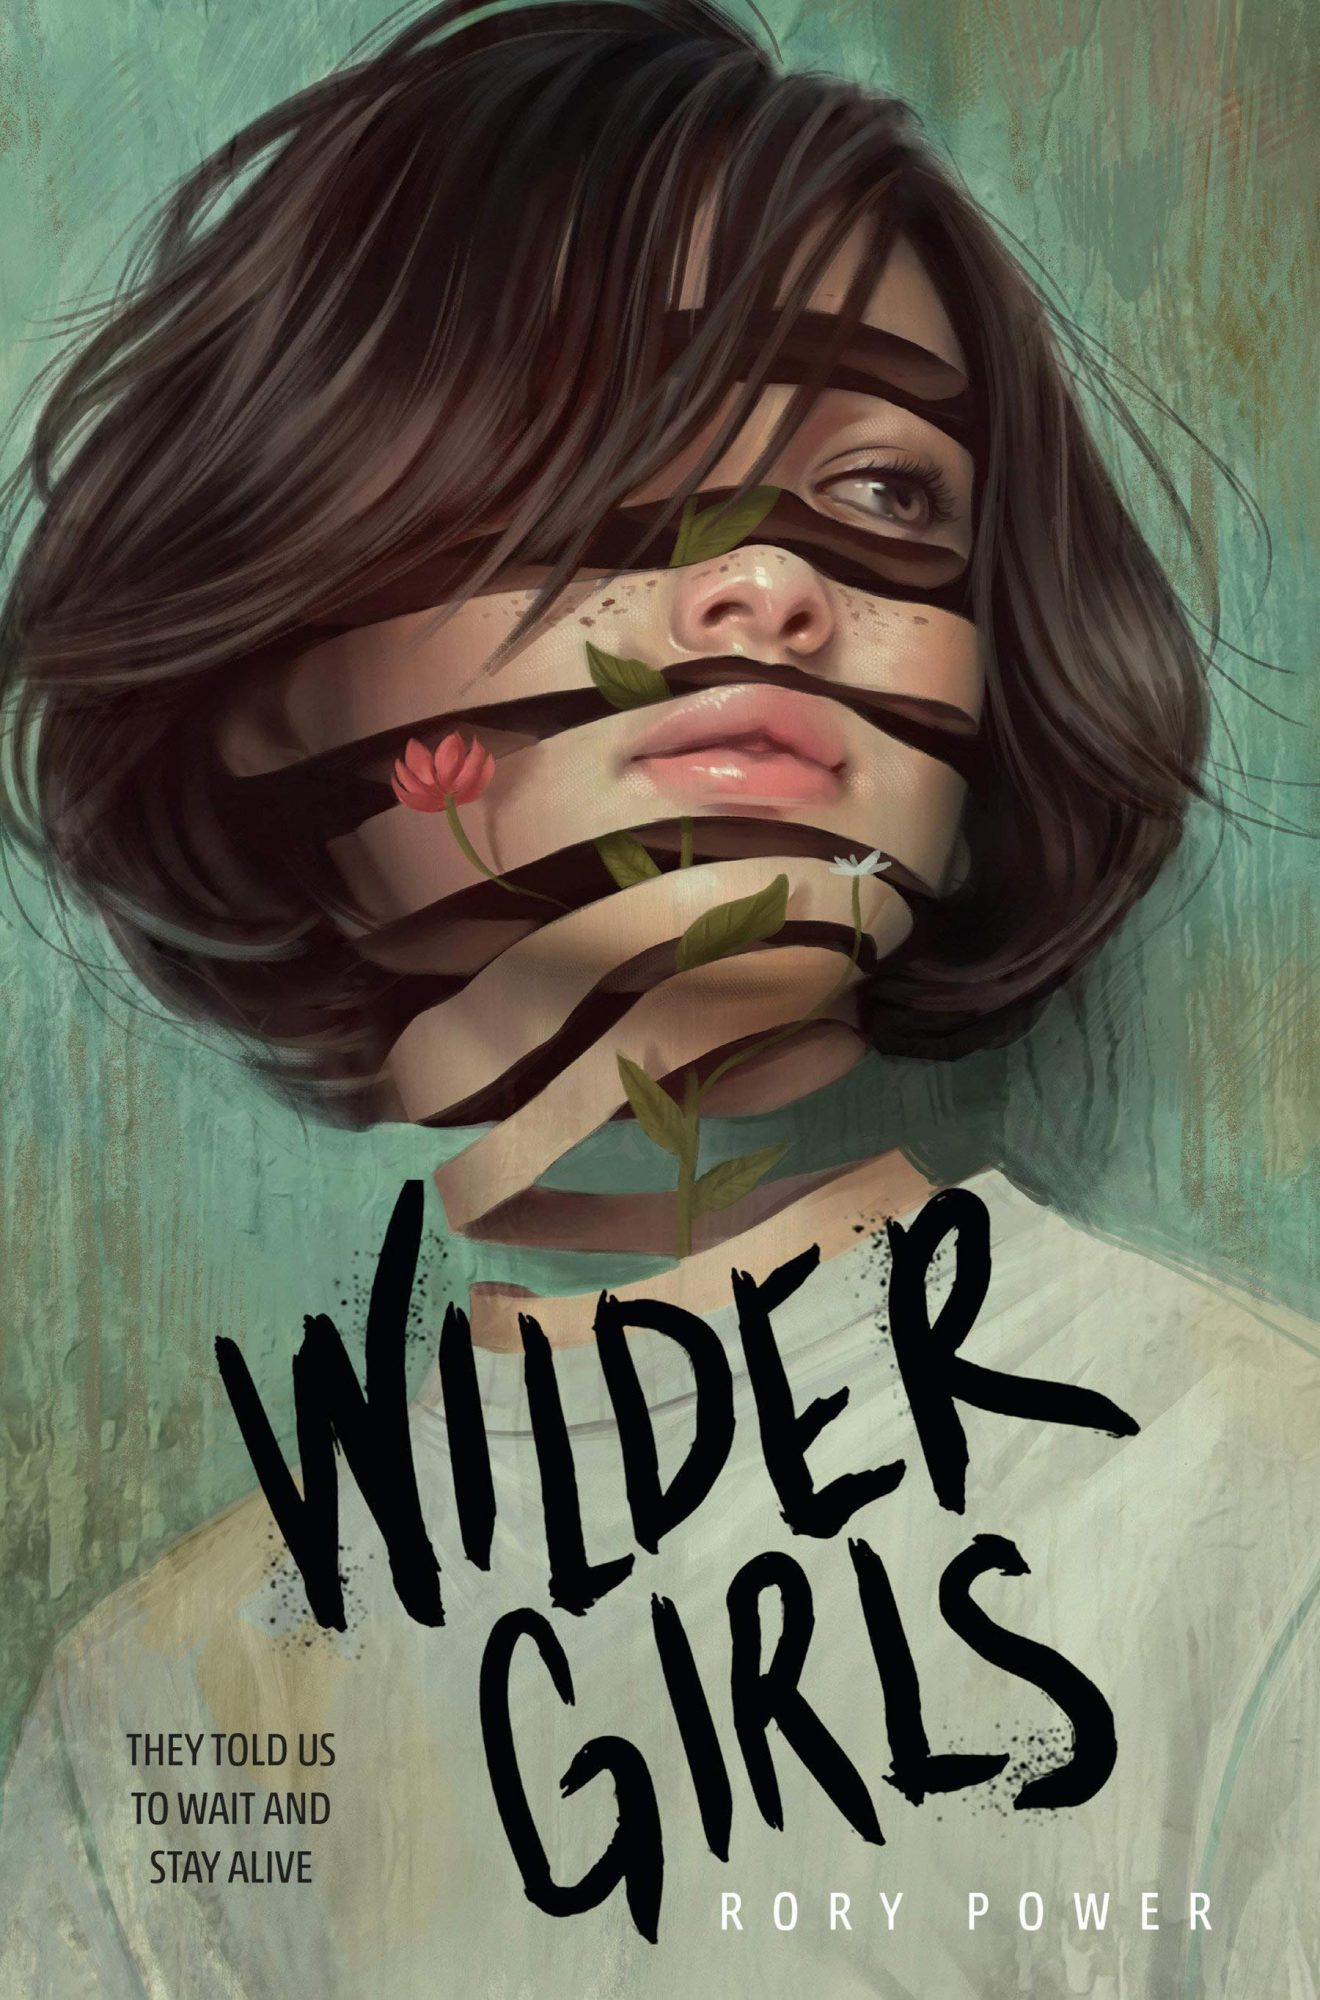 Wilder Girls by Rory PowerPublisher: Delacorte Press